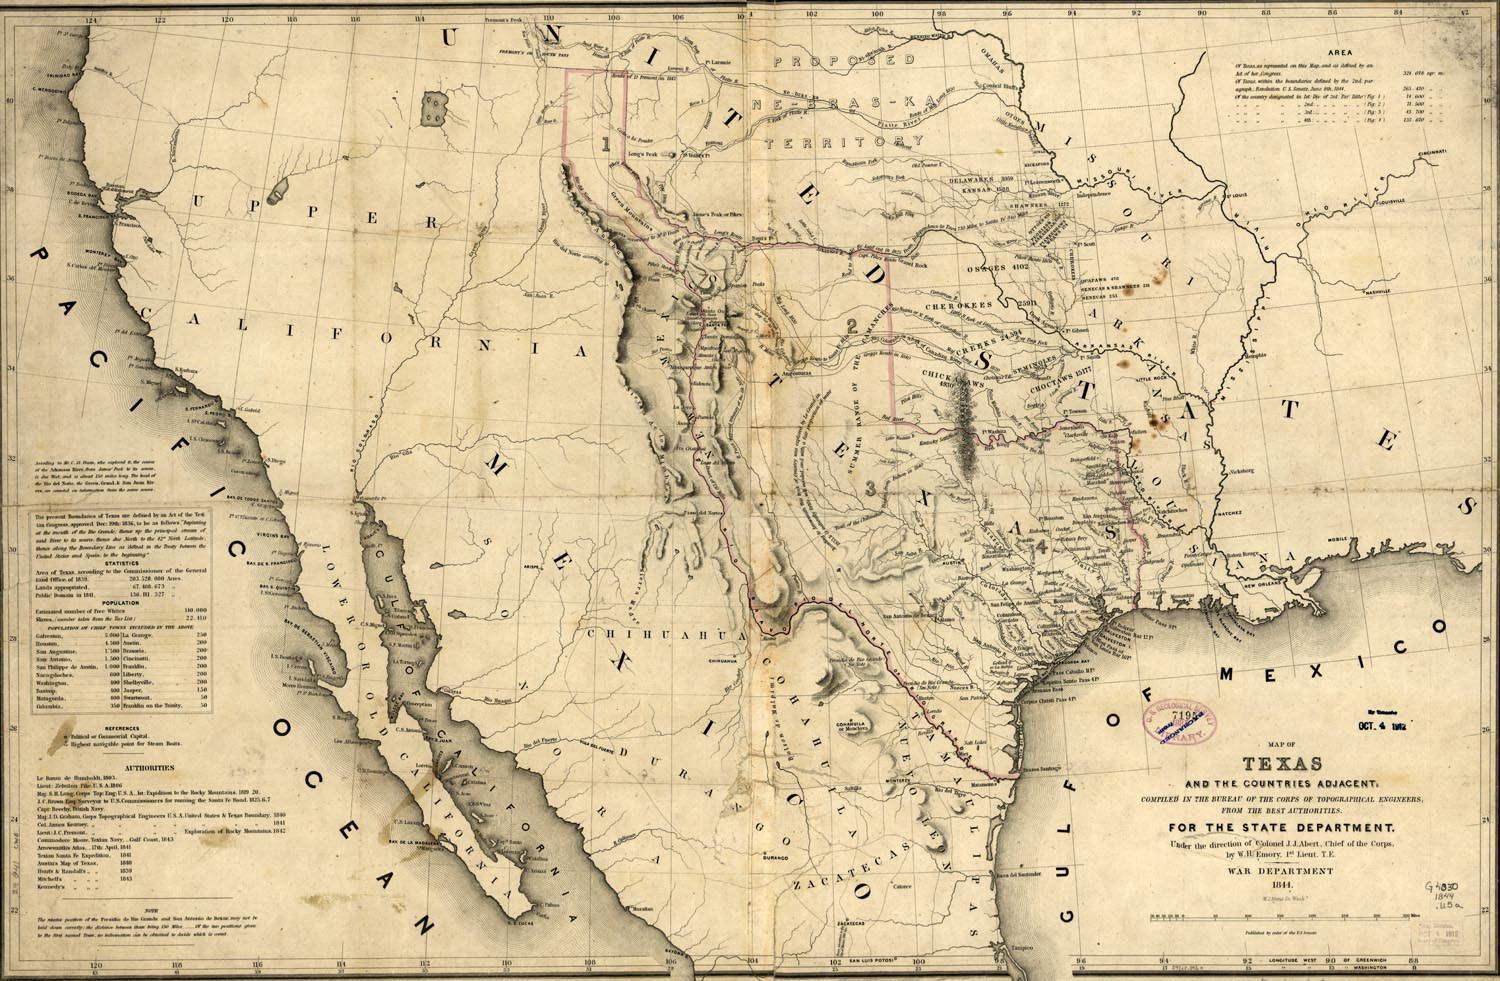 Republic of Texas Map, 1846